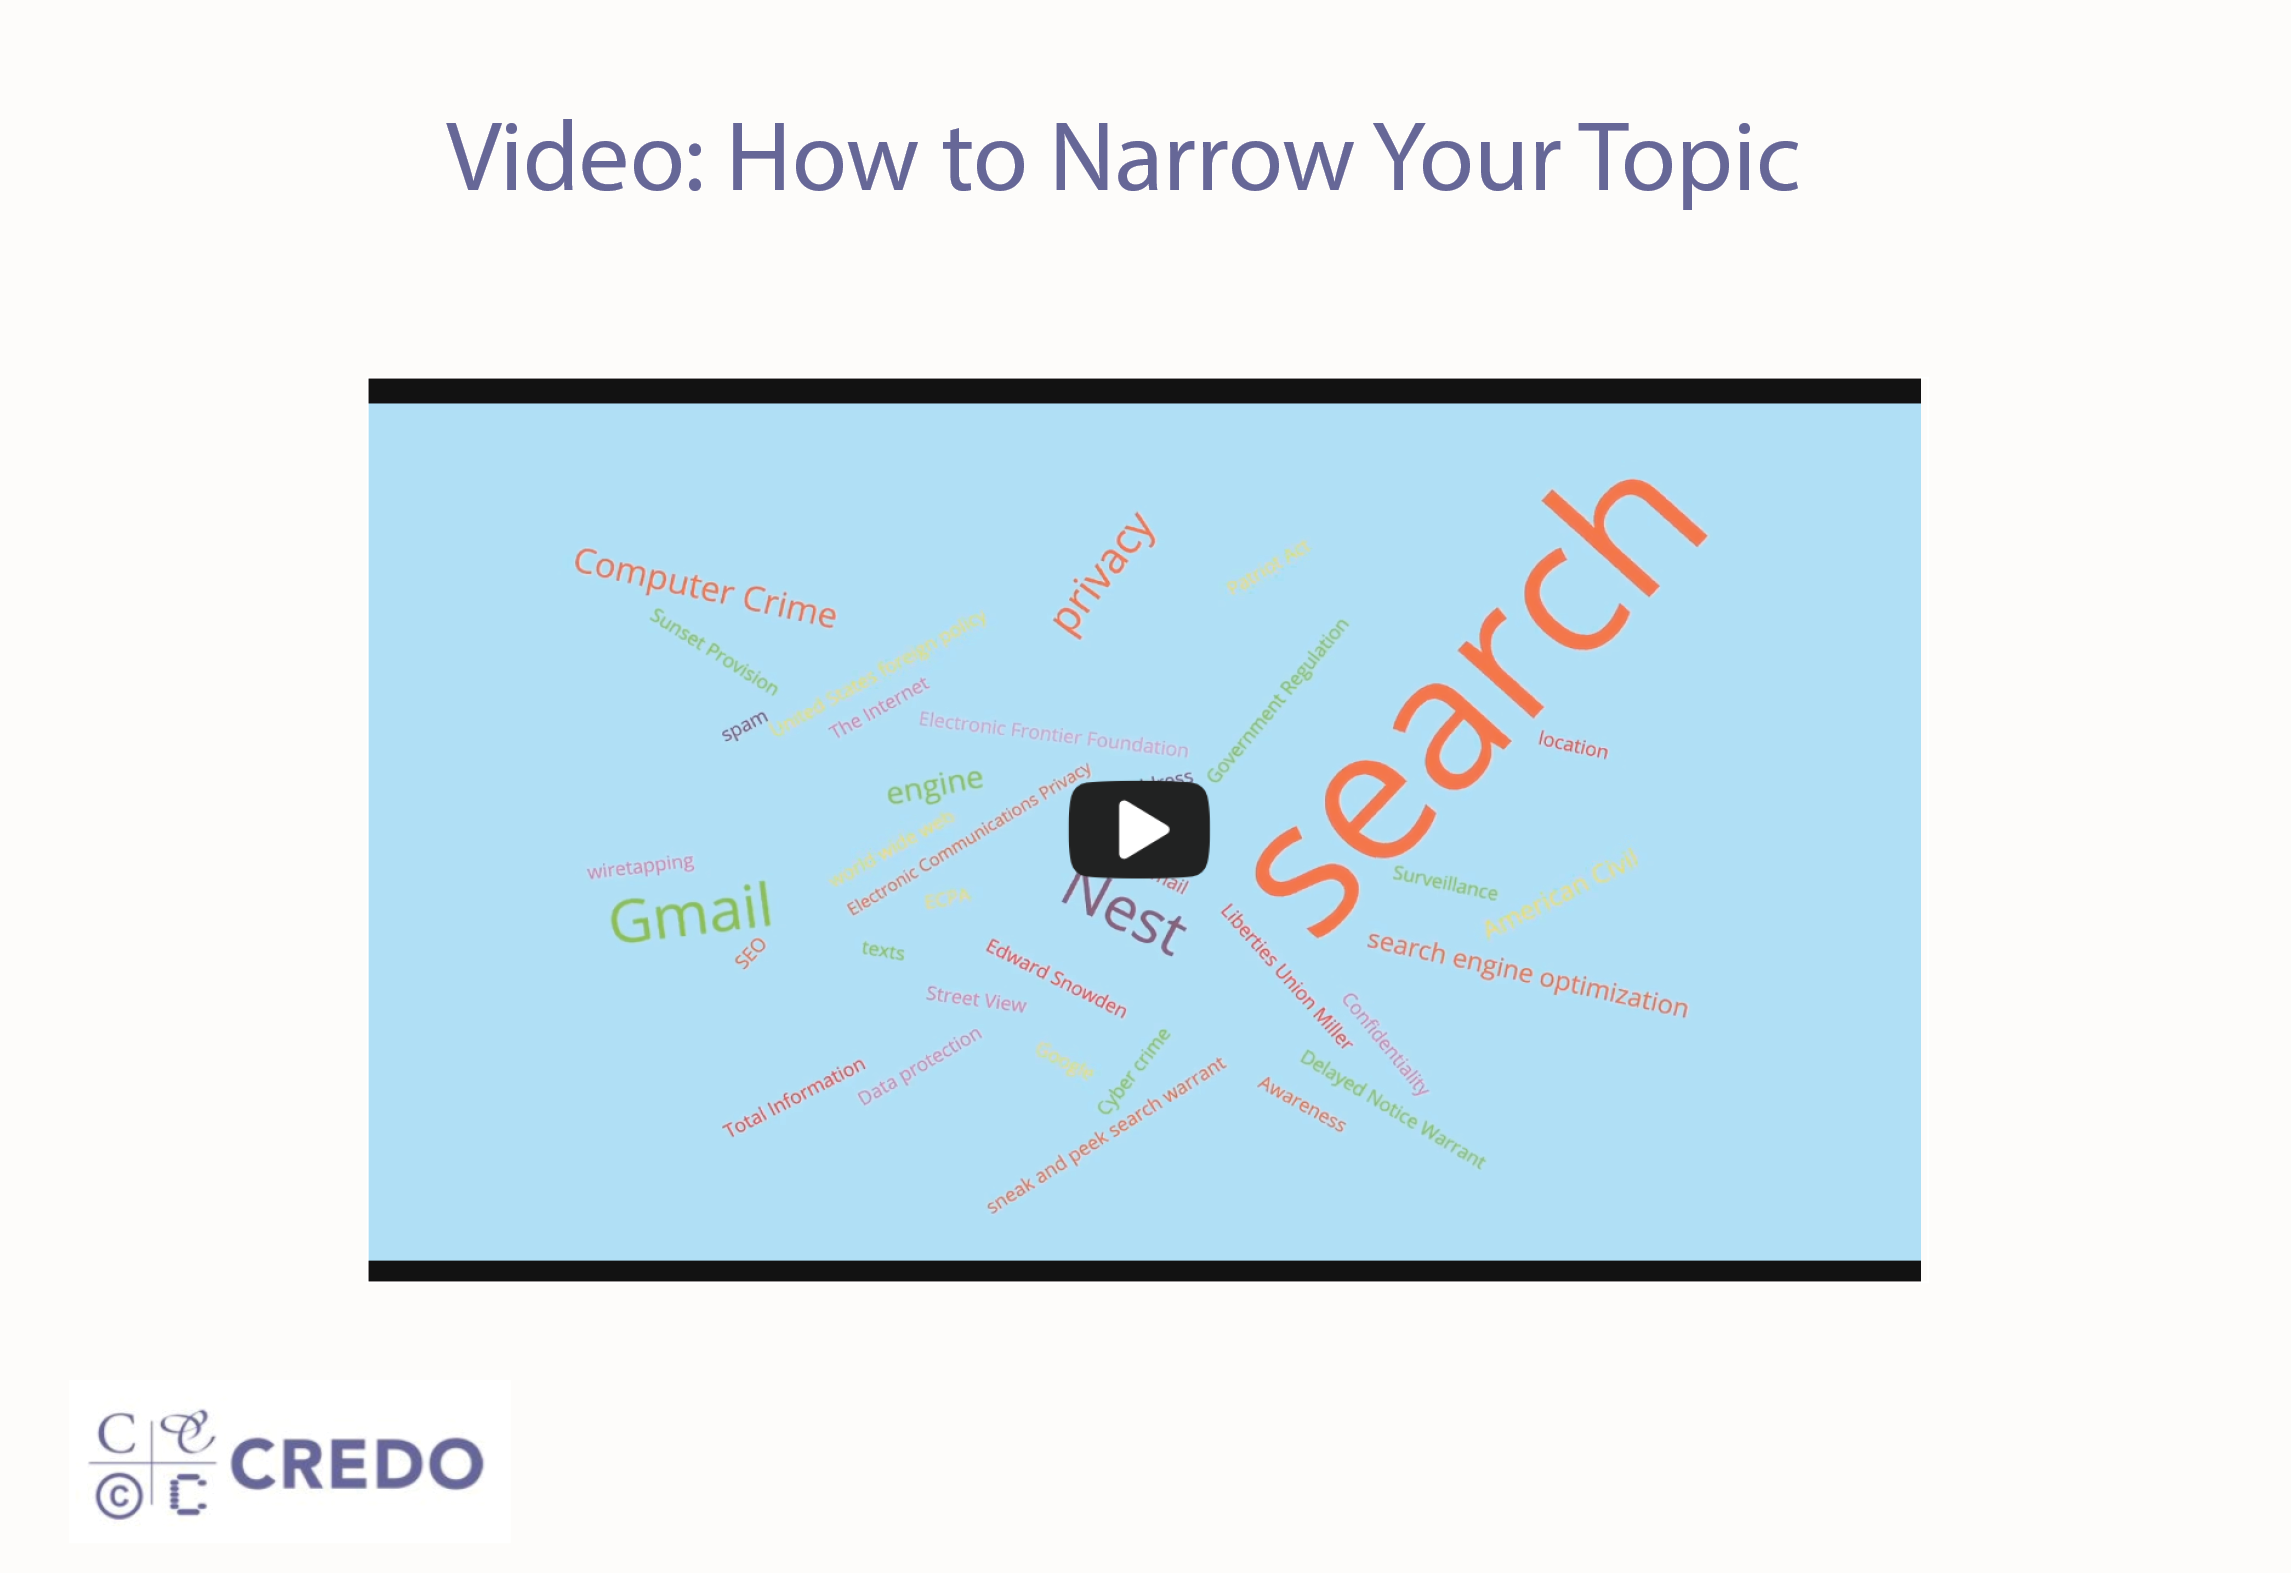 Video: How to Narrow Your Topic